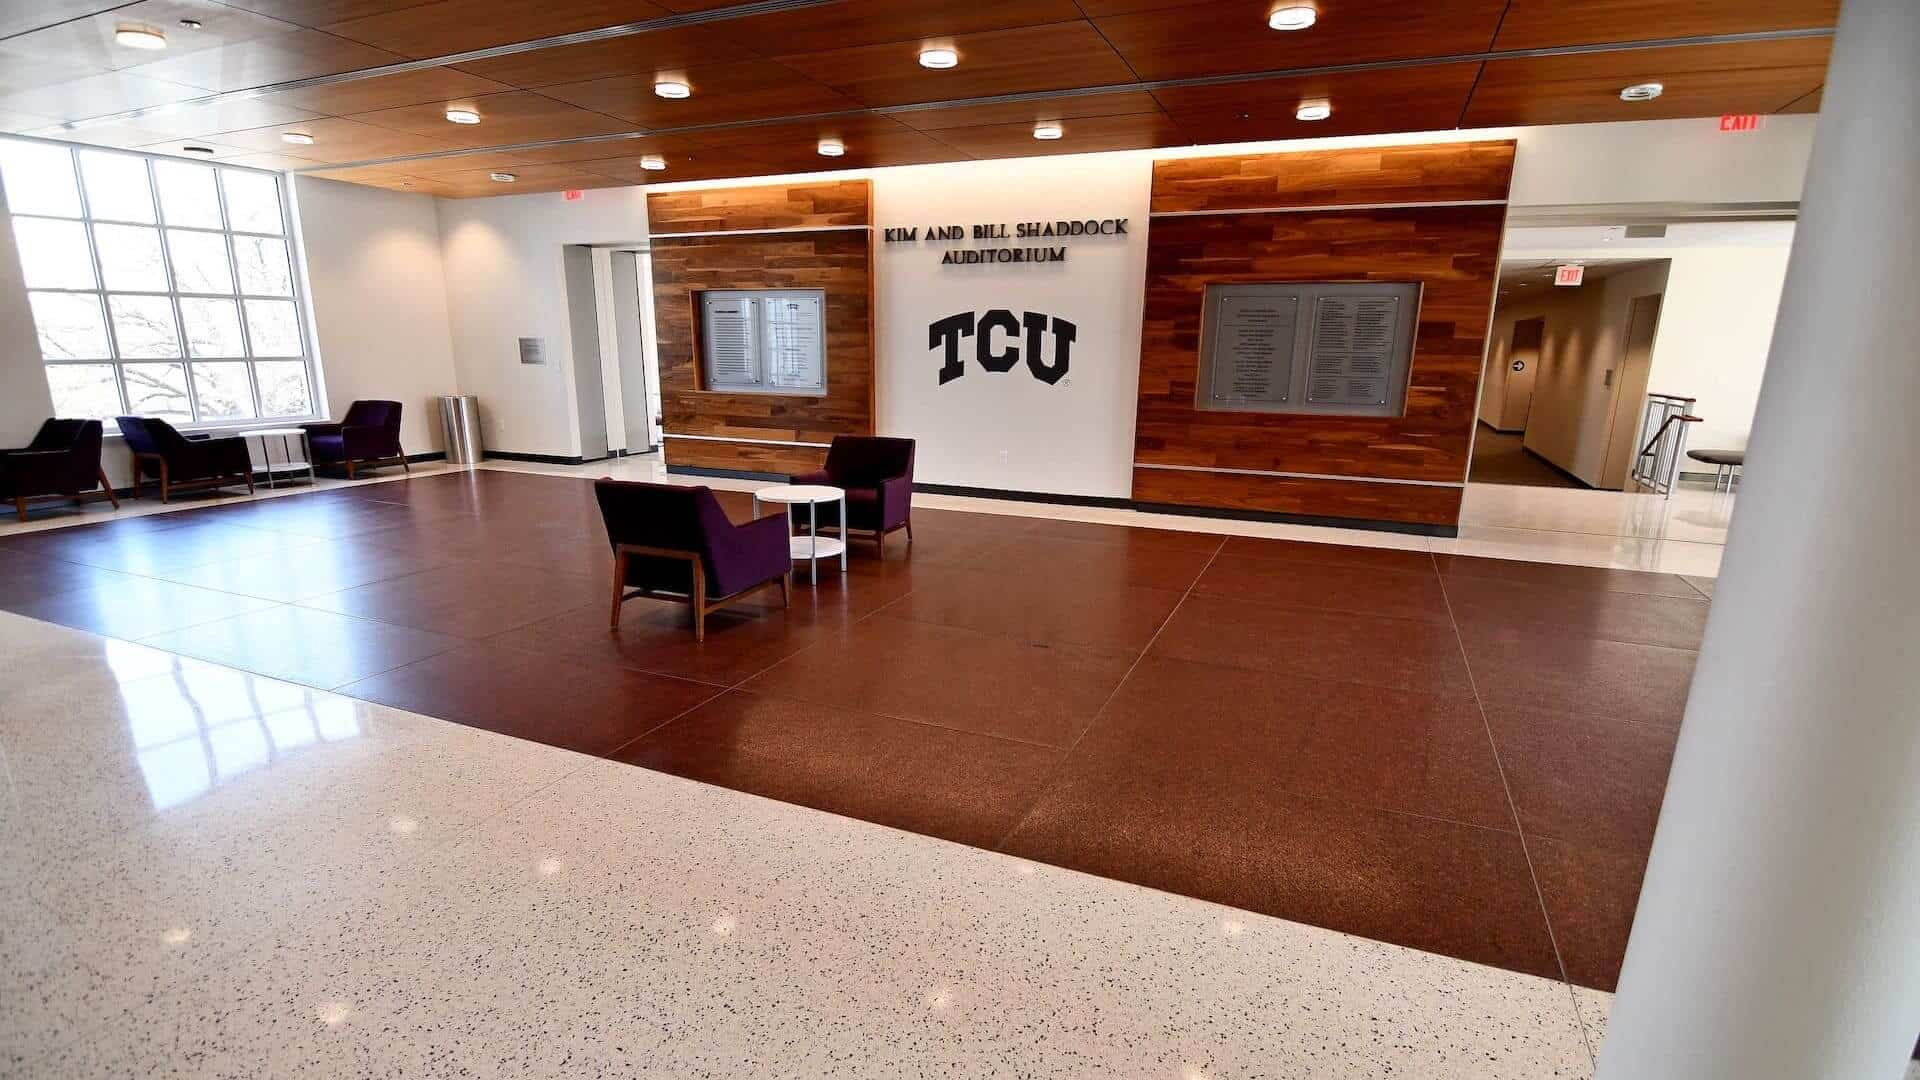 Epoxy Terrazzo Flooring - Luxurious and Sustainable Flooring at the Kim and Bill Shaddock Auditorium